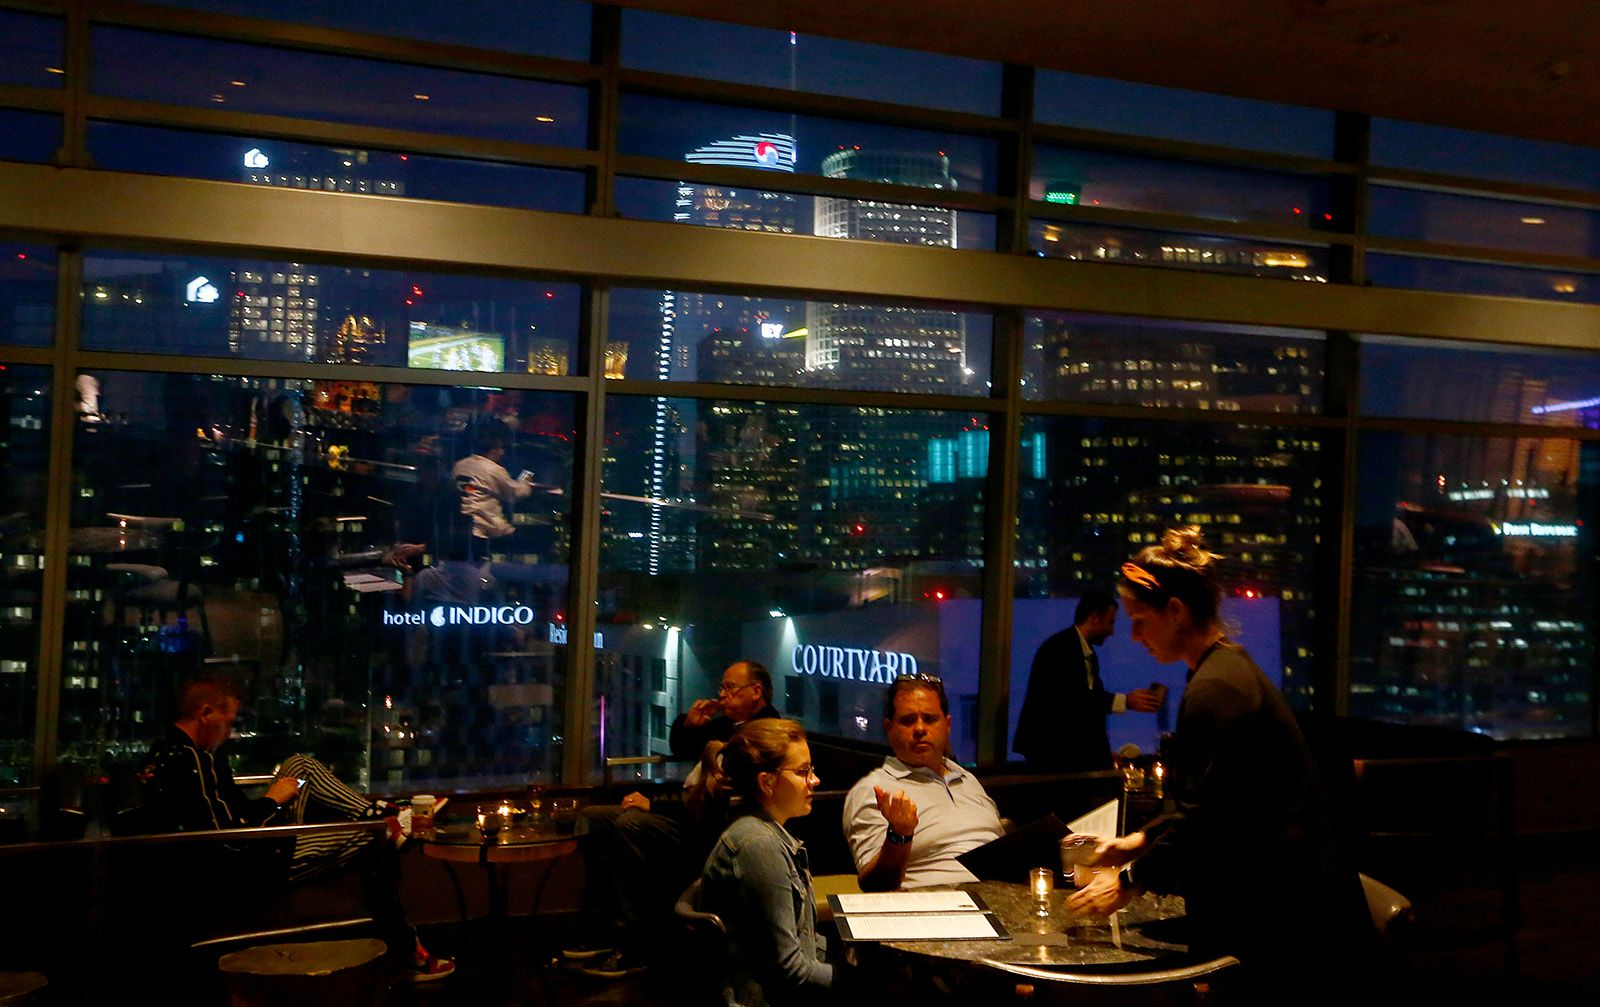 Guests dine with a stellar view of downtown Los Angeles at WP24 by Wolfgang Puck in the Ritz-Carlton Hotel at L.A. Live.